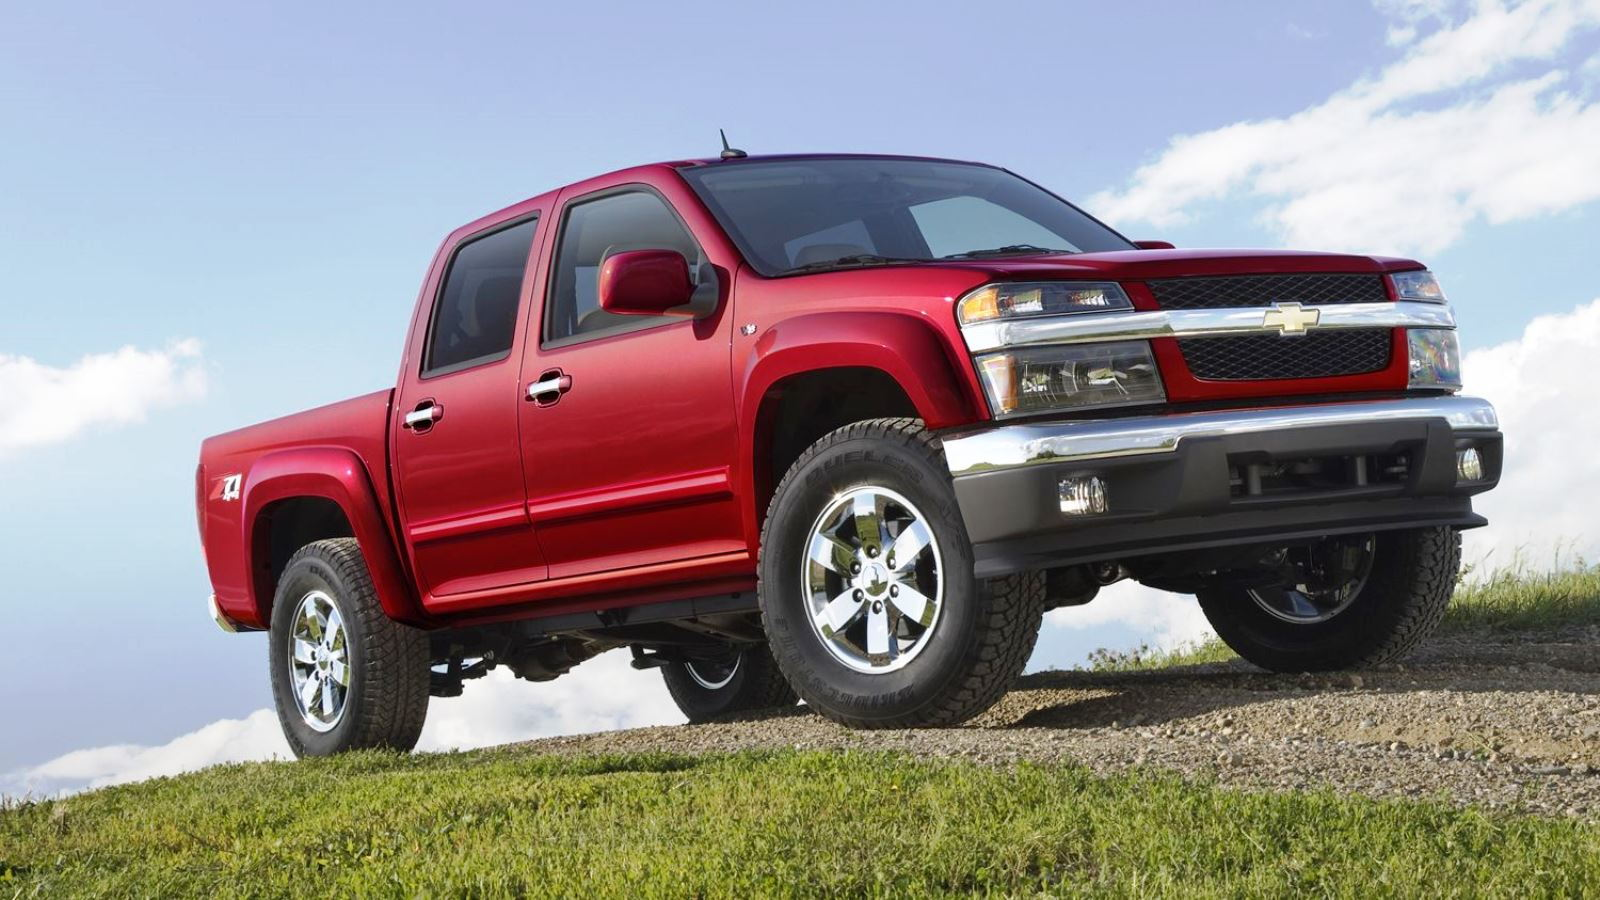 8 Facts About the 2009-12 Chevy Colorado/GMC Canyon with LS